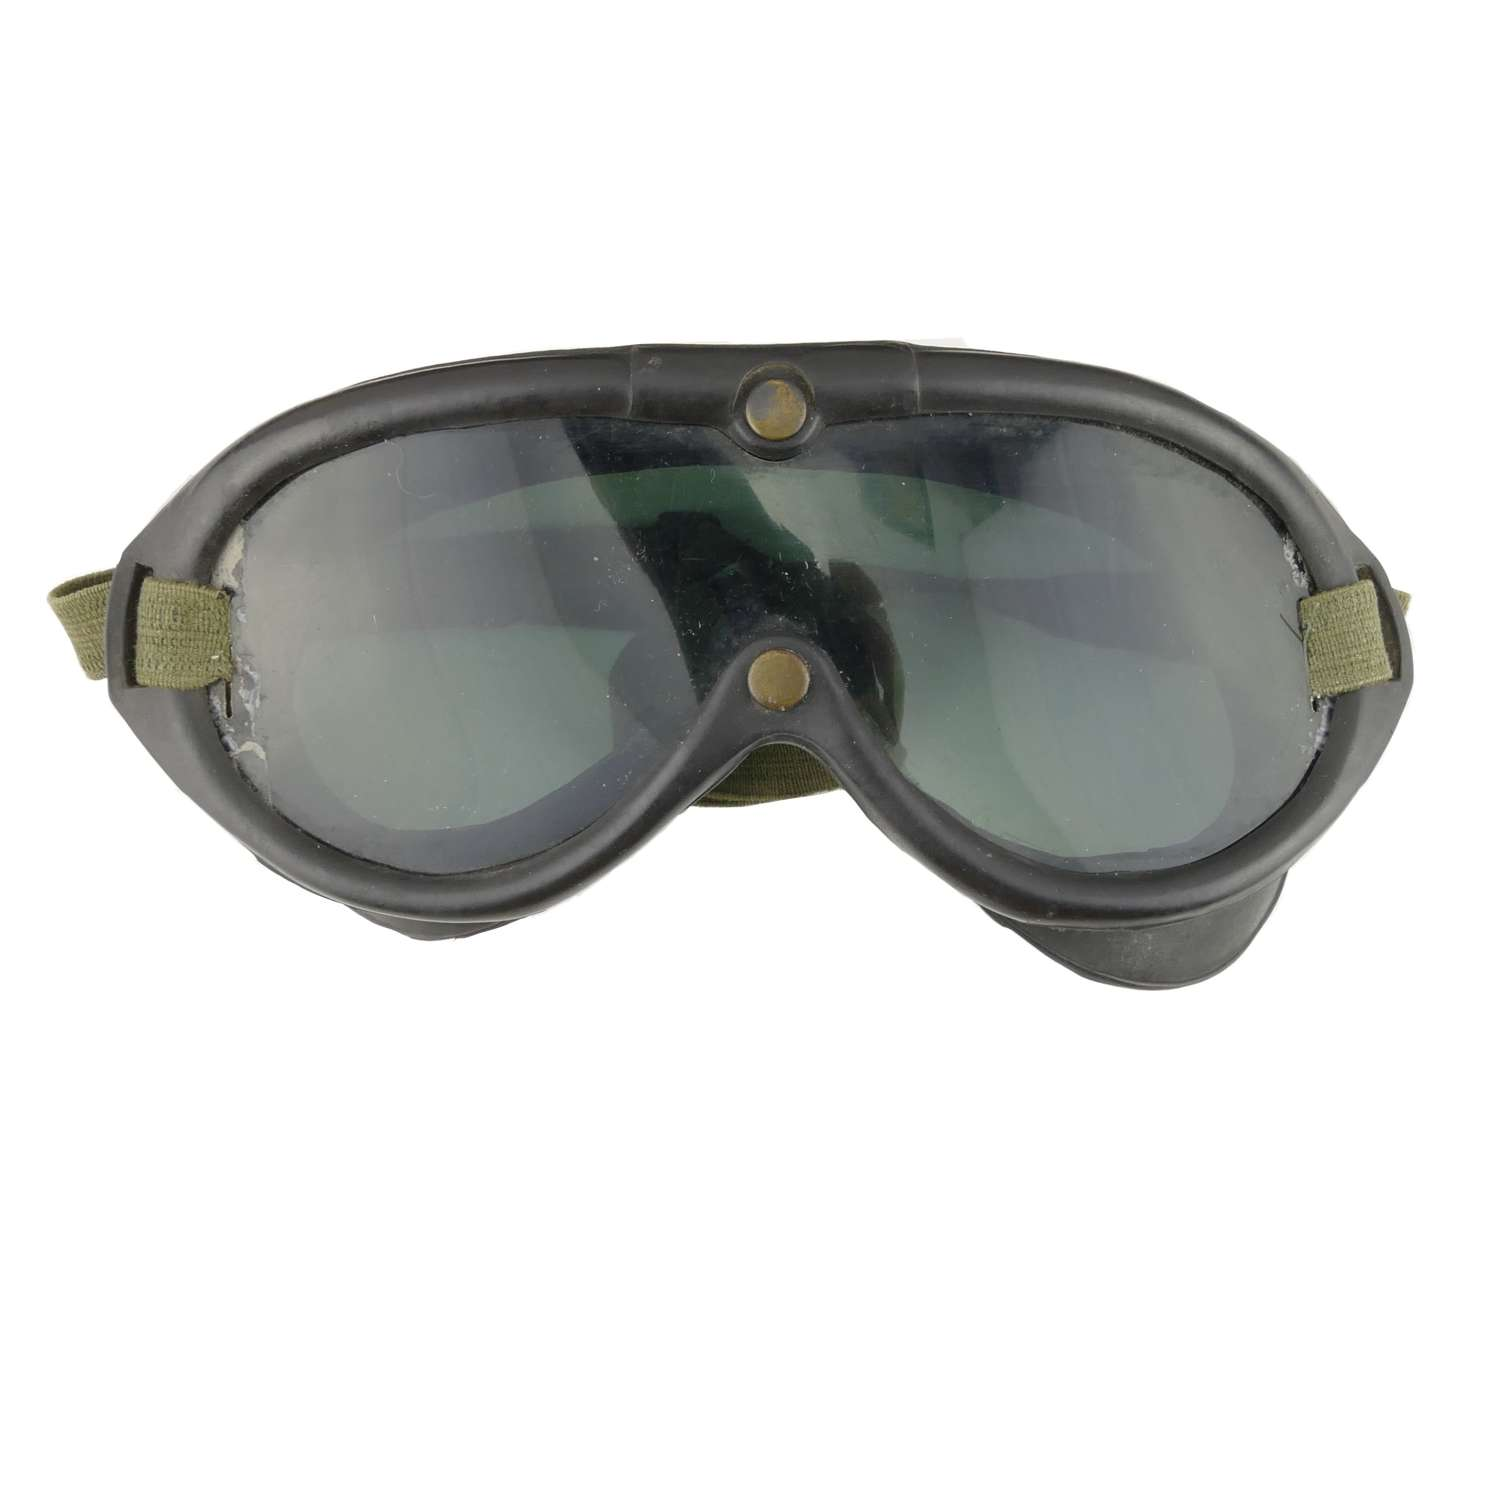 USAAF 'used' M1944 goggles